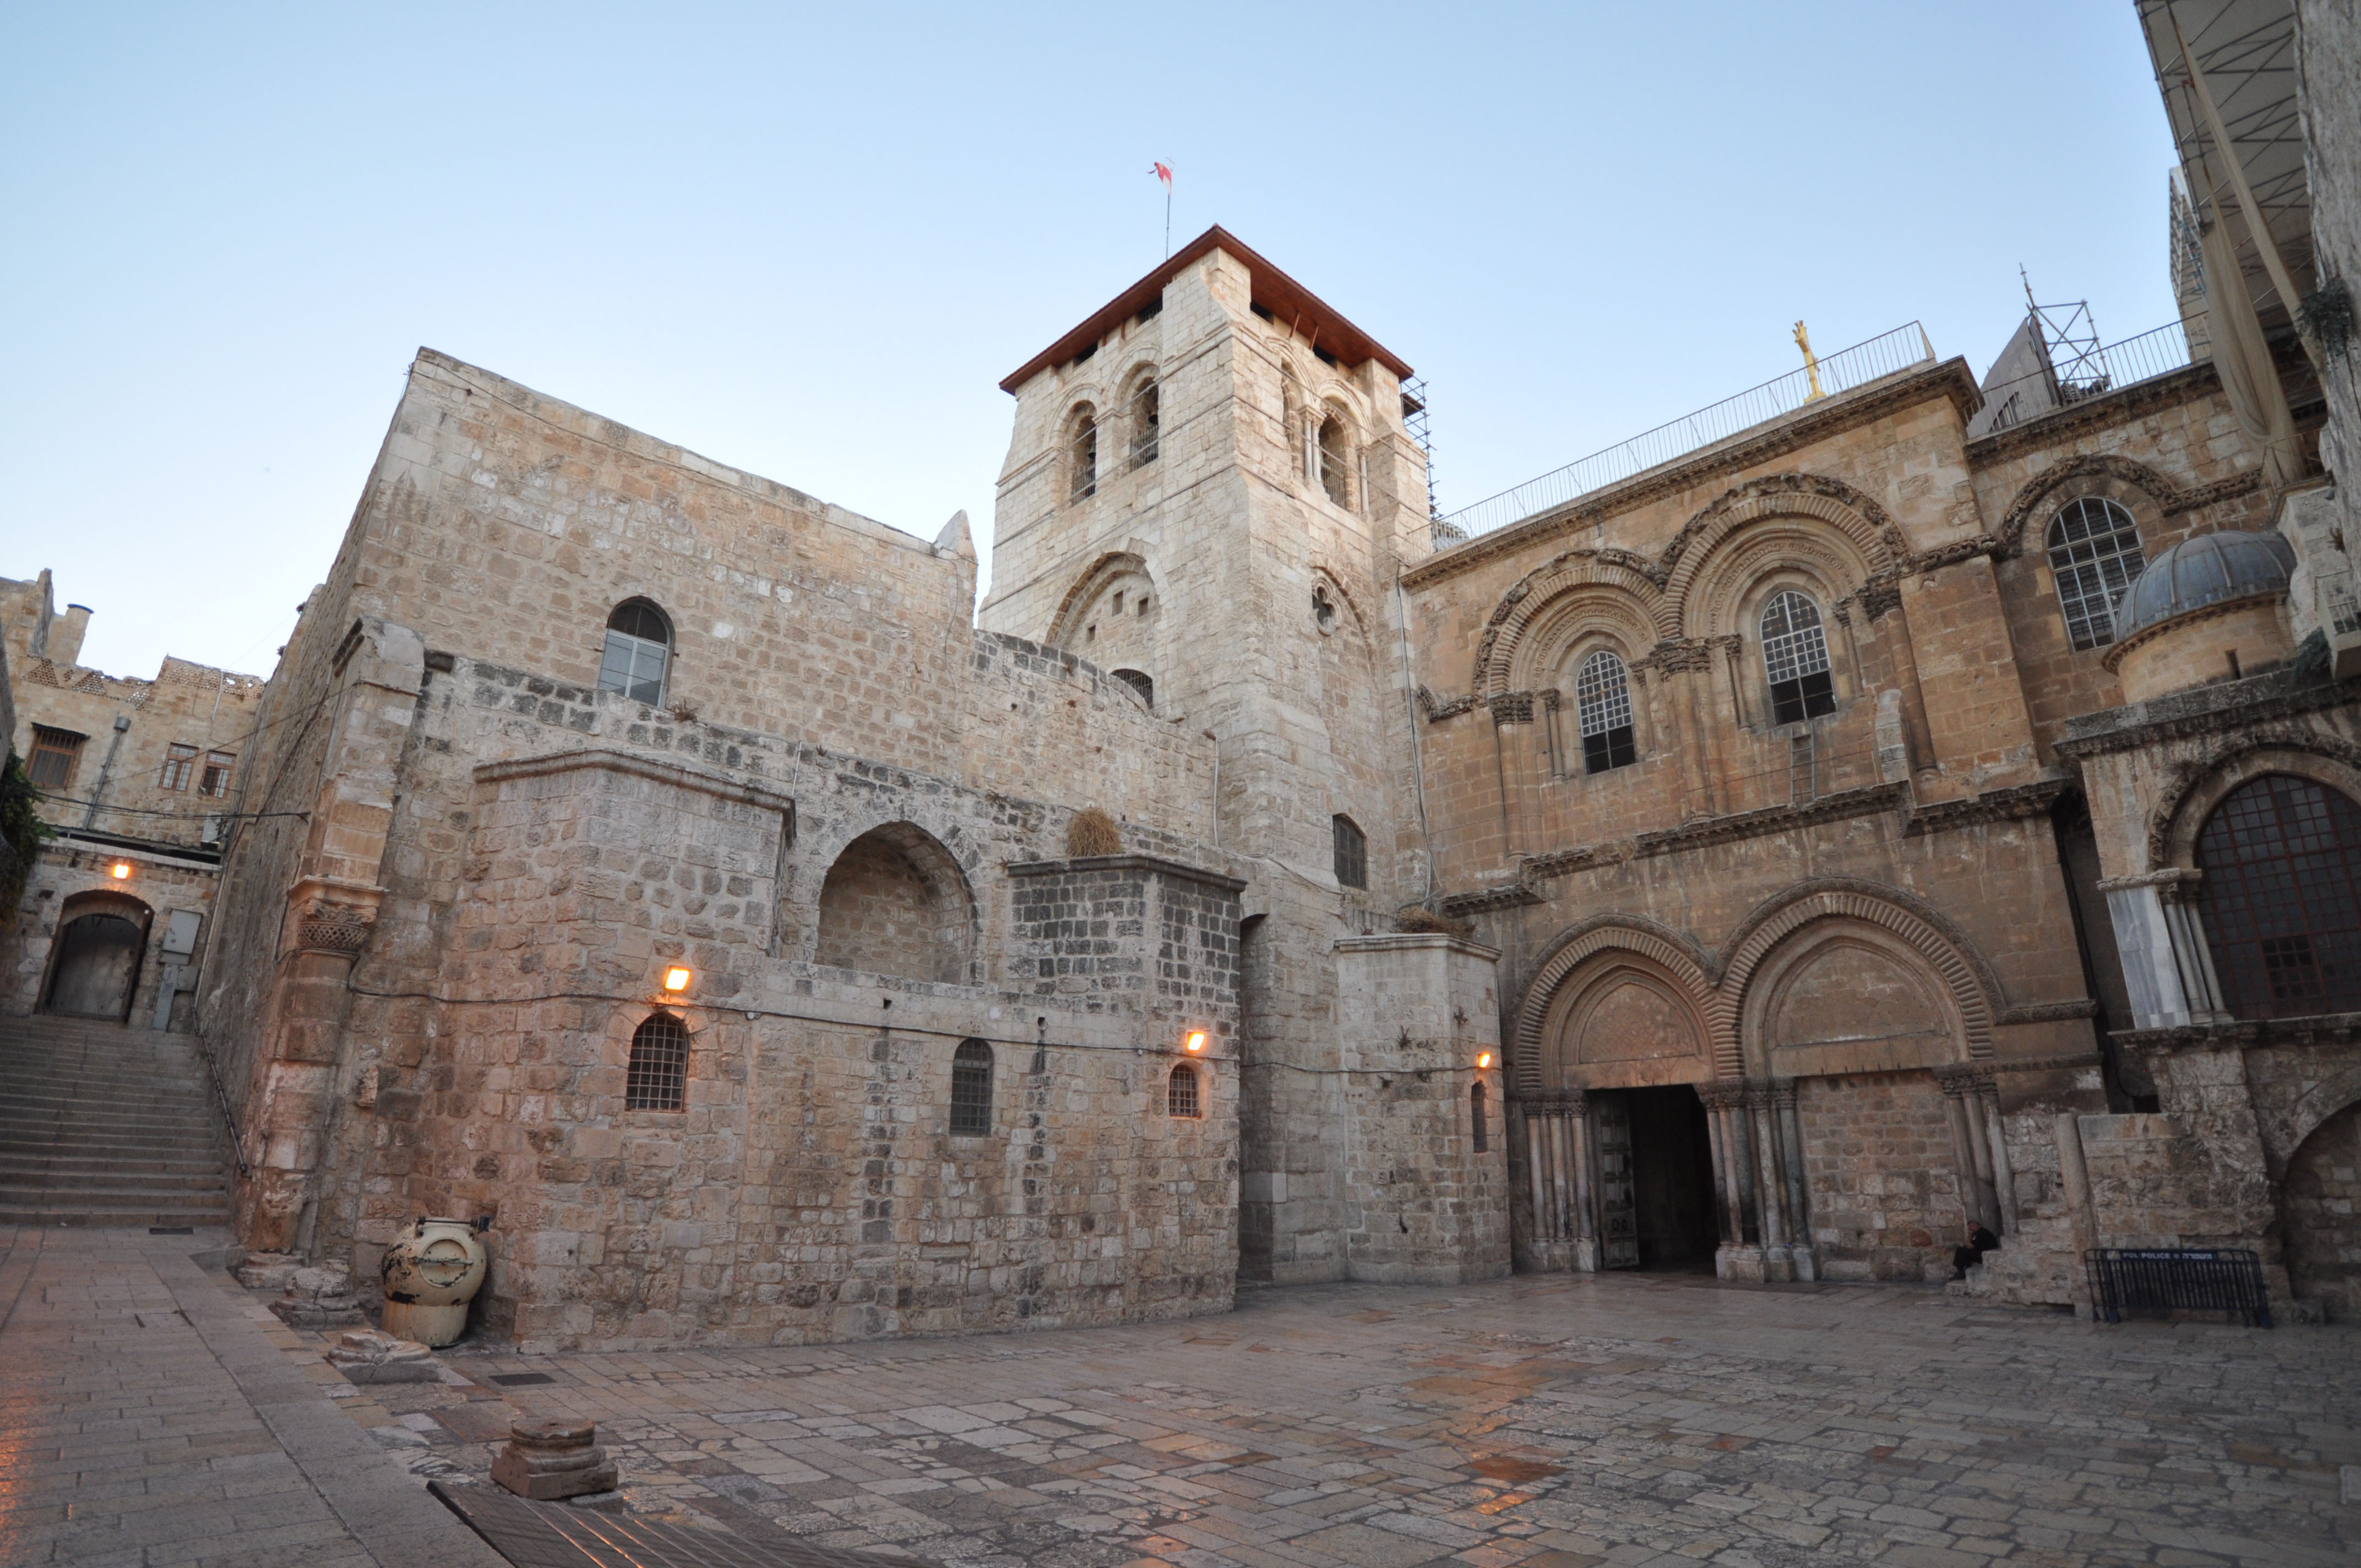 The Church of the Holy Sepulchered